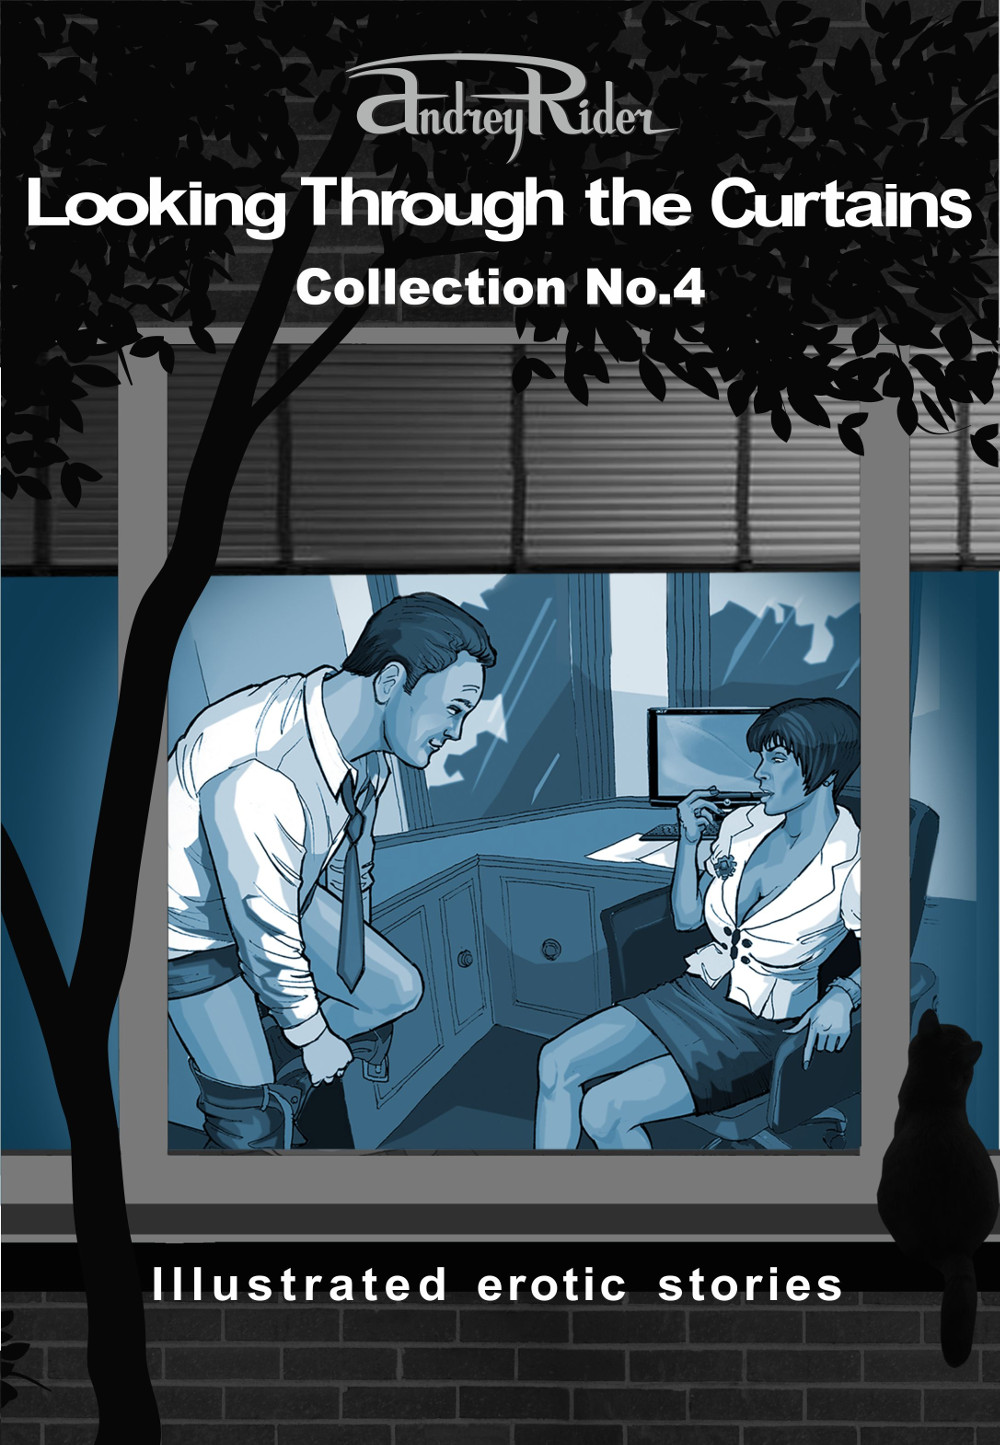 Collection of Erotic Stories No.4